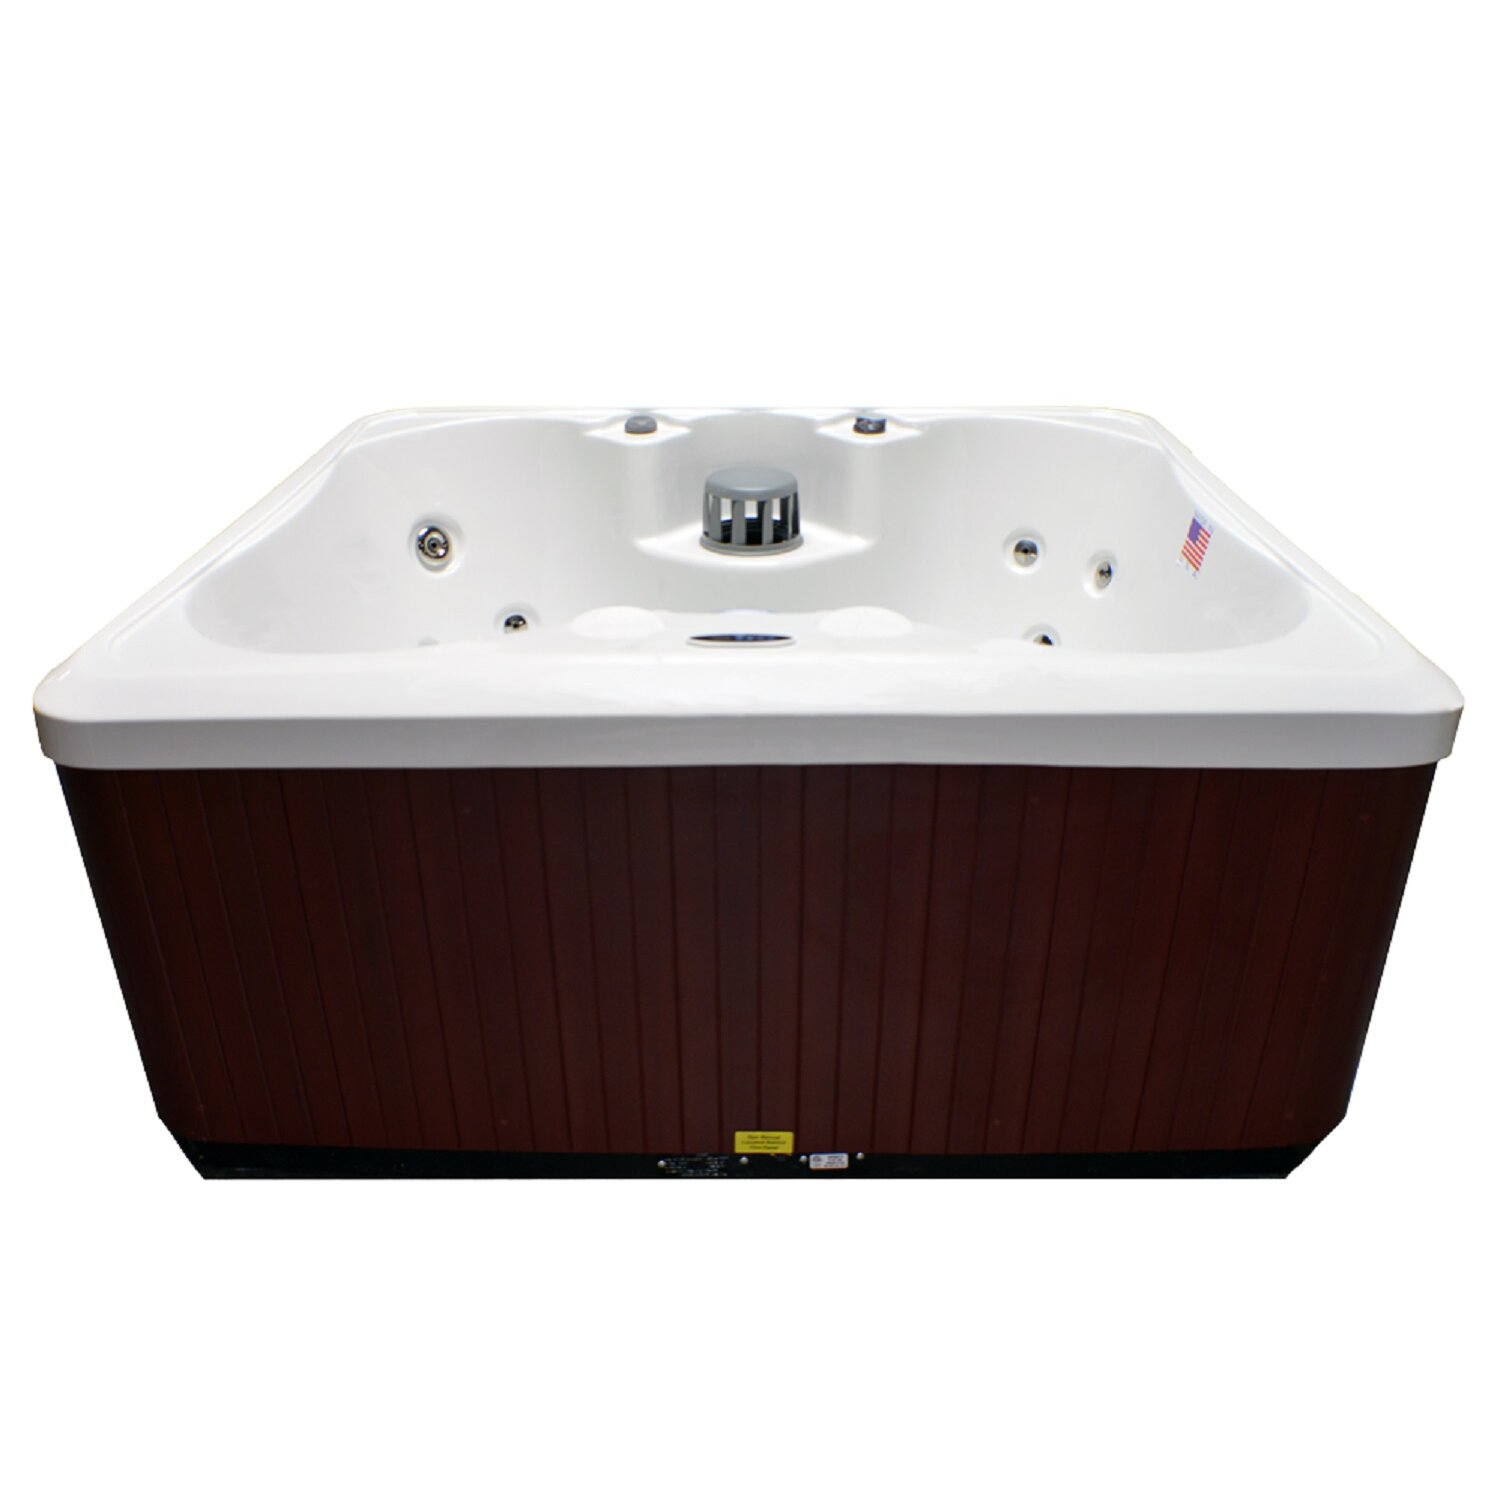 Home And Garden Spas 4 Person 14 Jet Plug And Play Spa